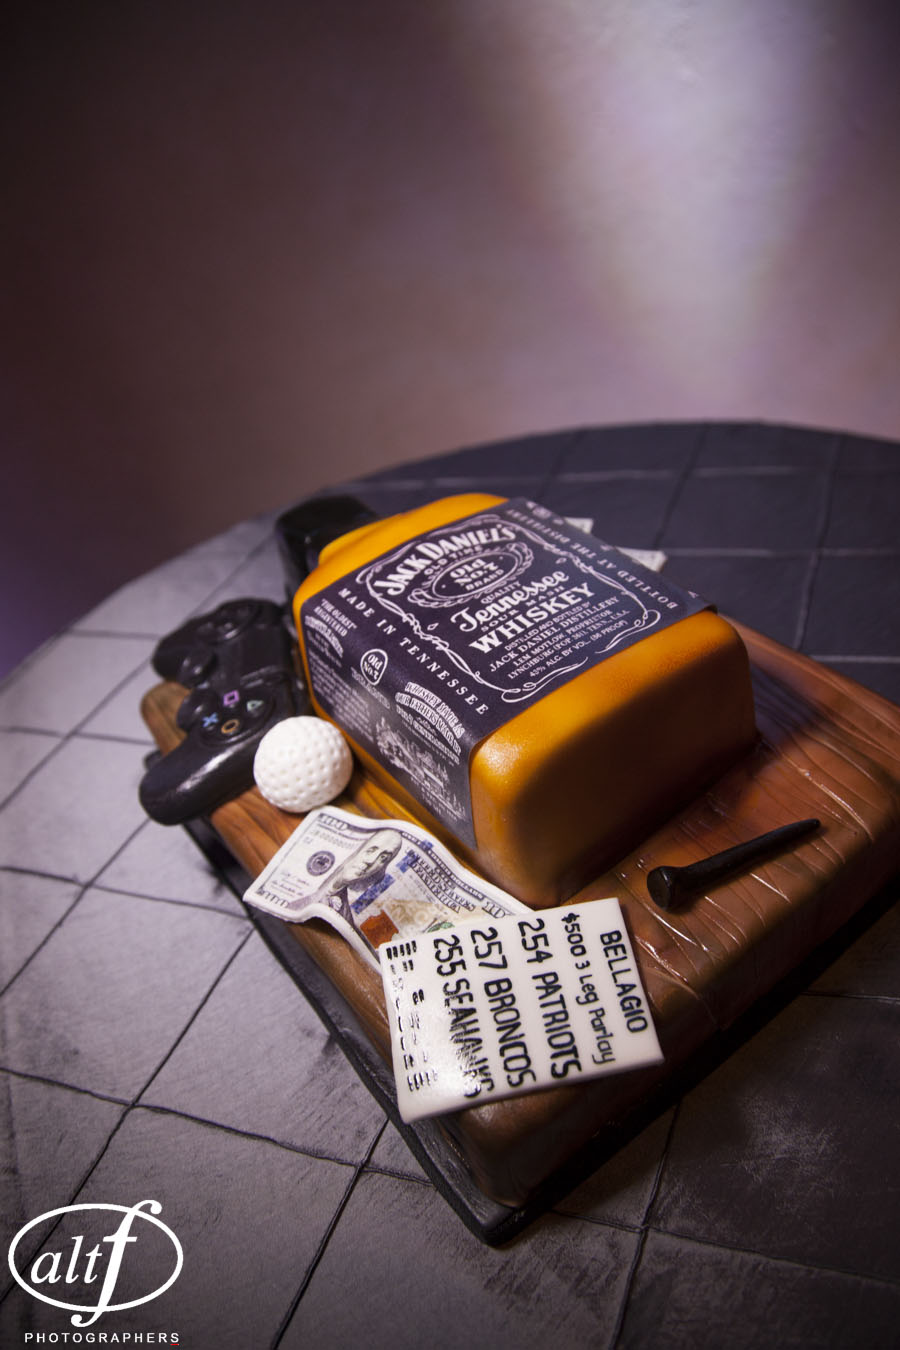 The Bad Boy Groom's Cake